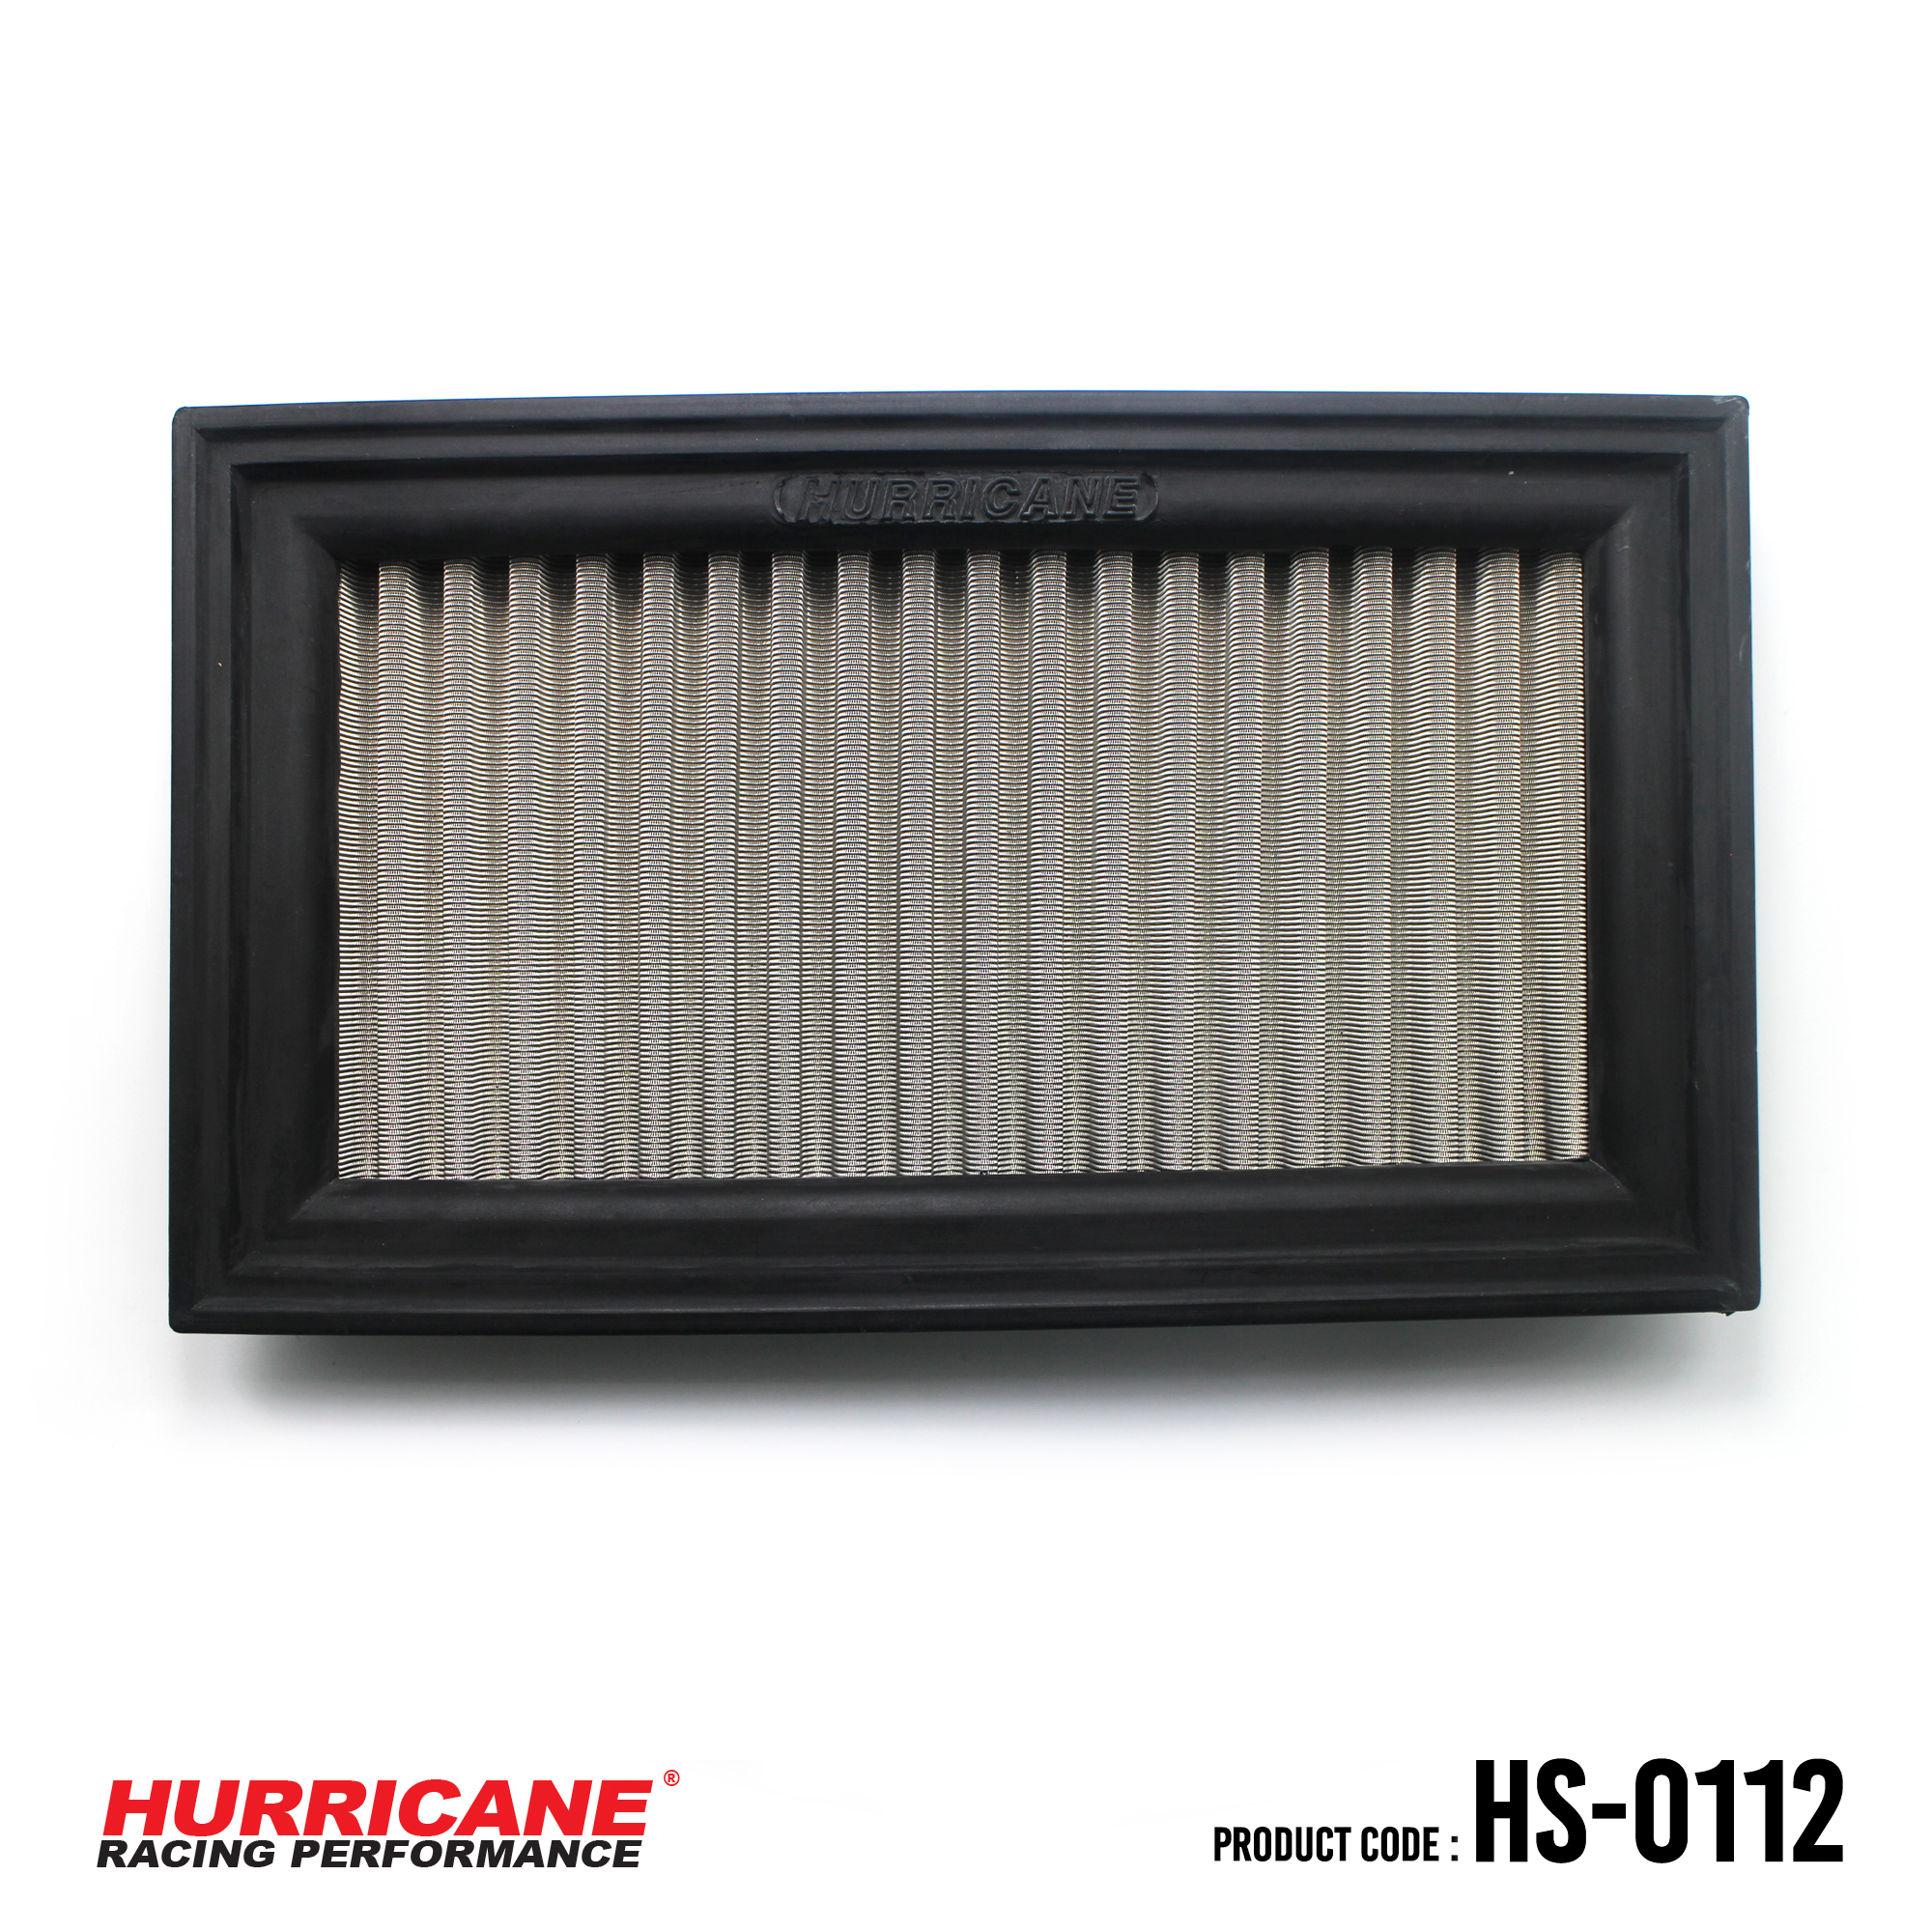 HURRICANE STAINLESS STEEL AIR FILTER FOR HS-0112 Nissan